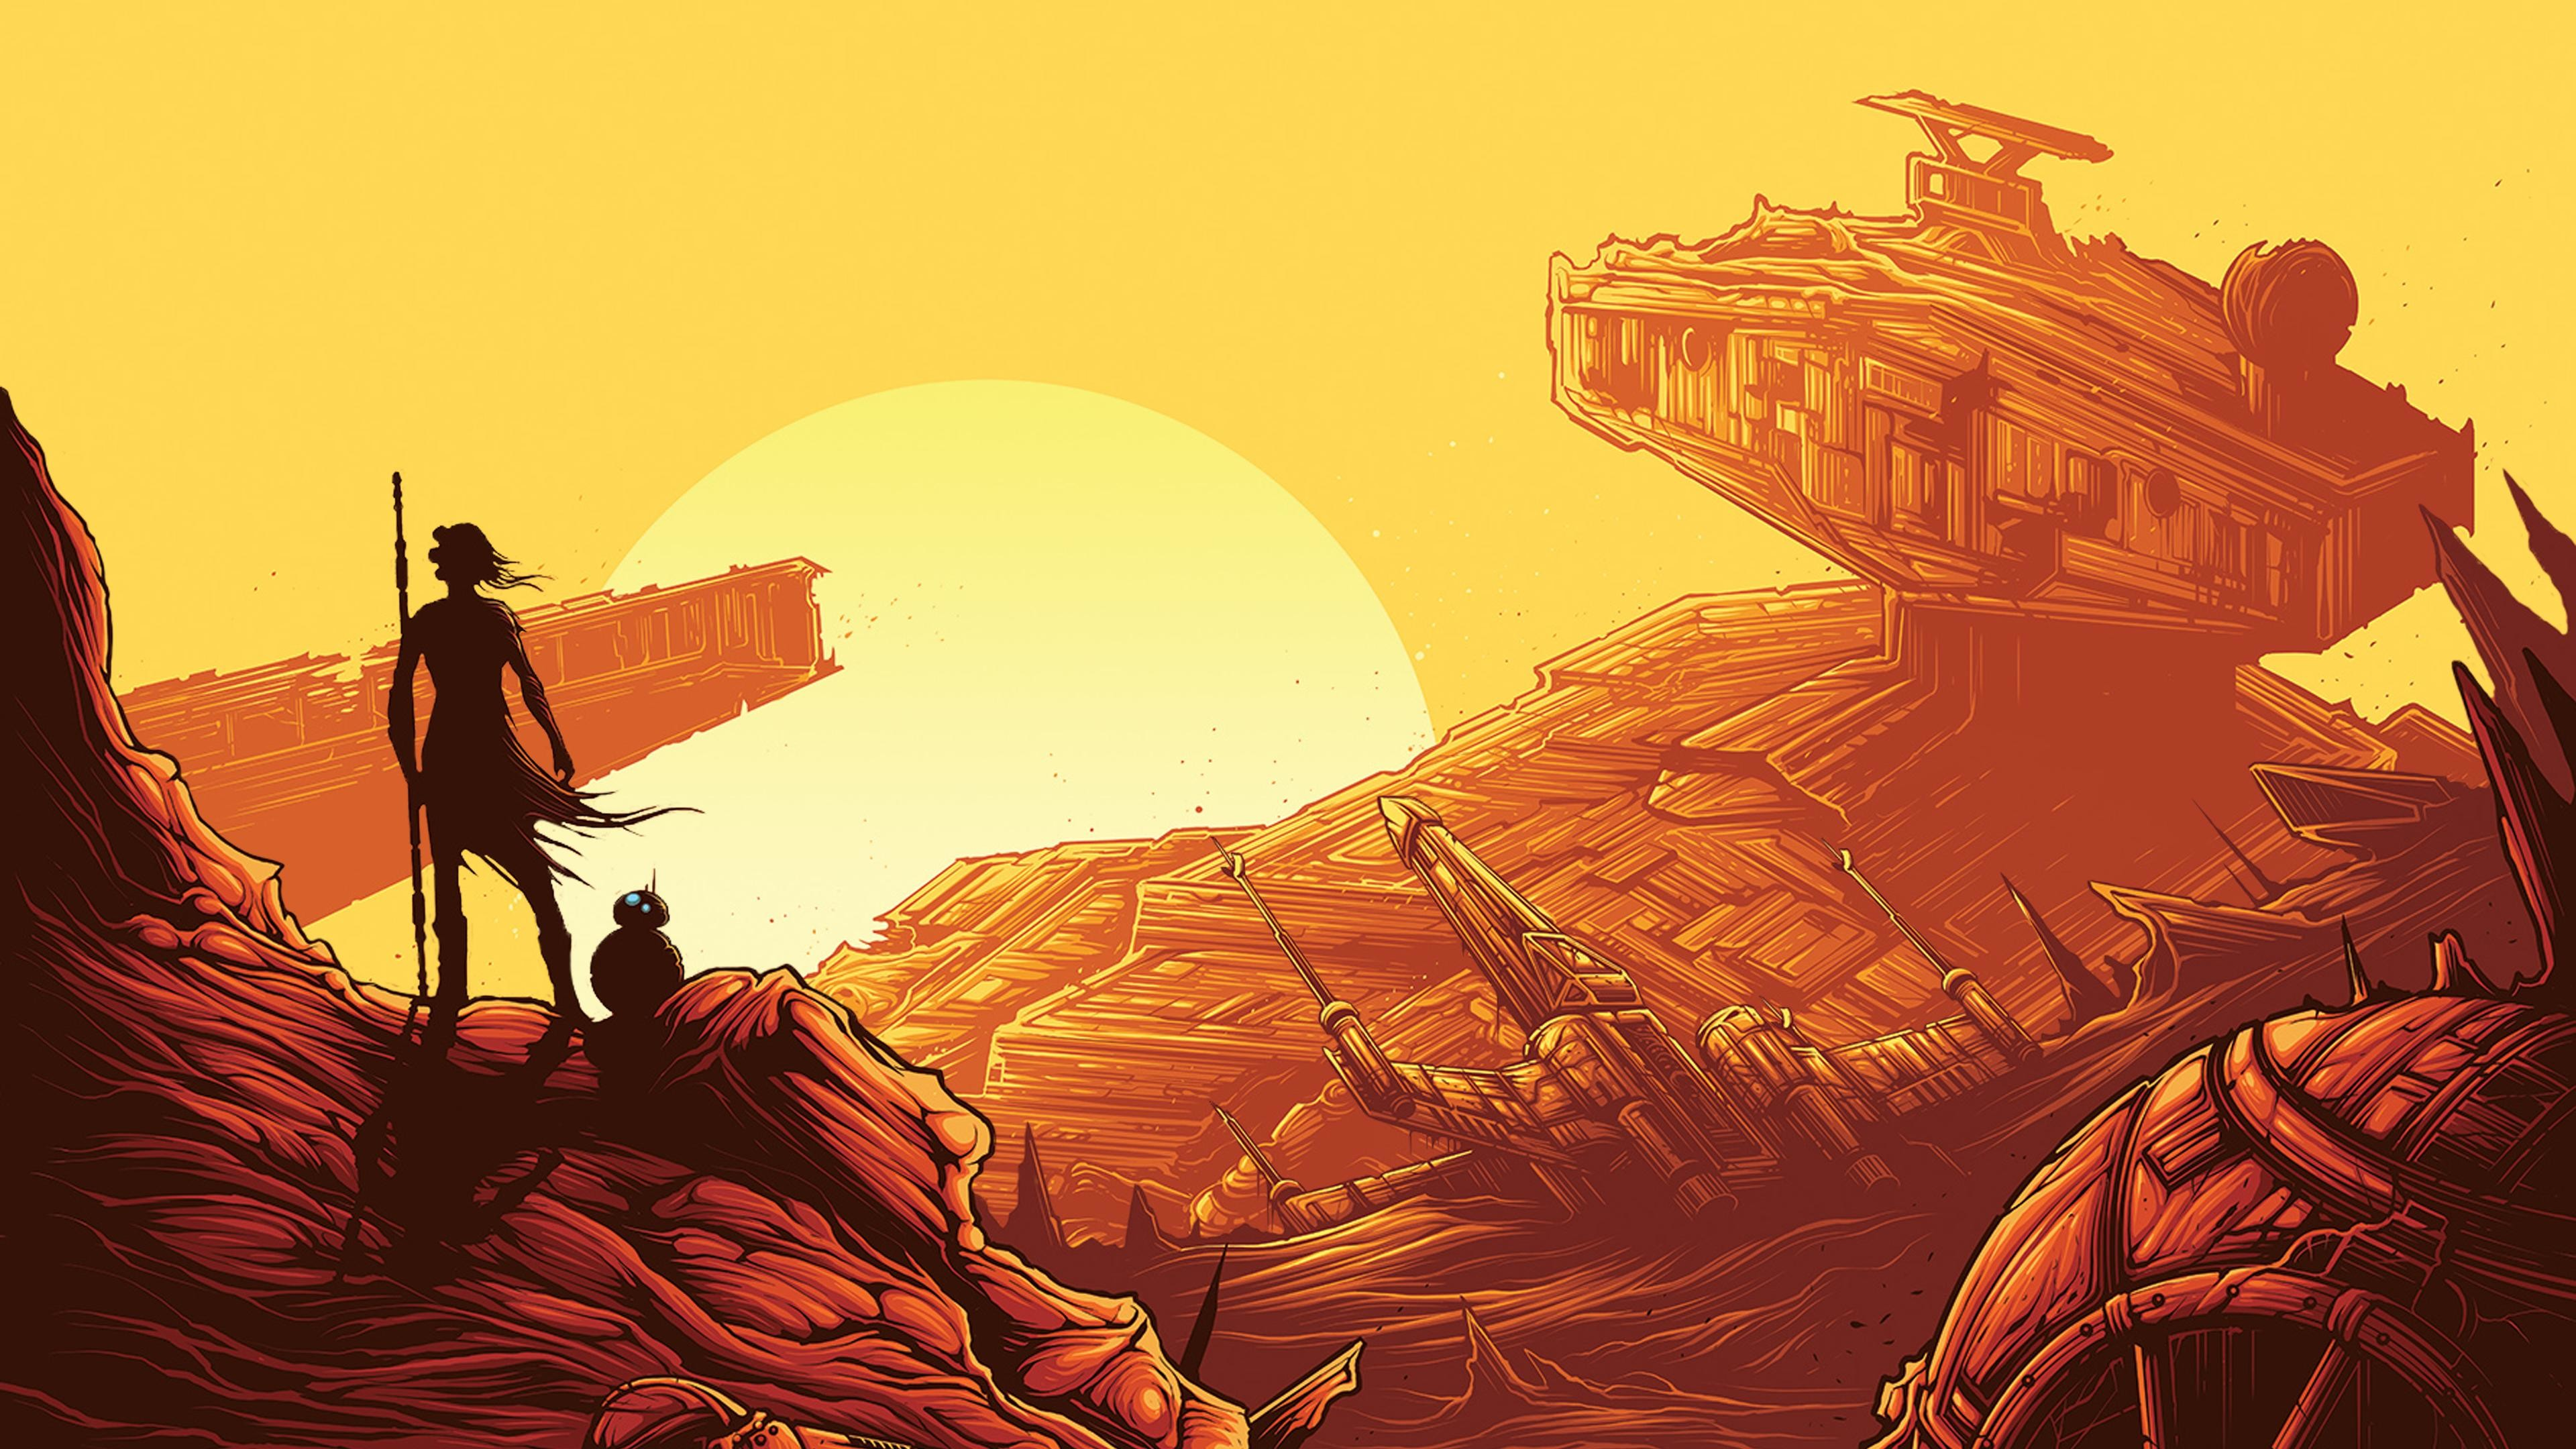 the force awakens poster wallpaper (70+ images)